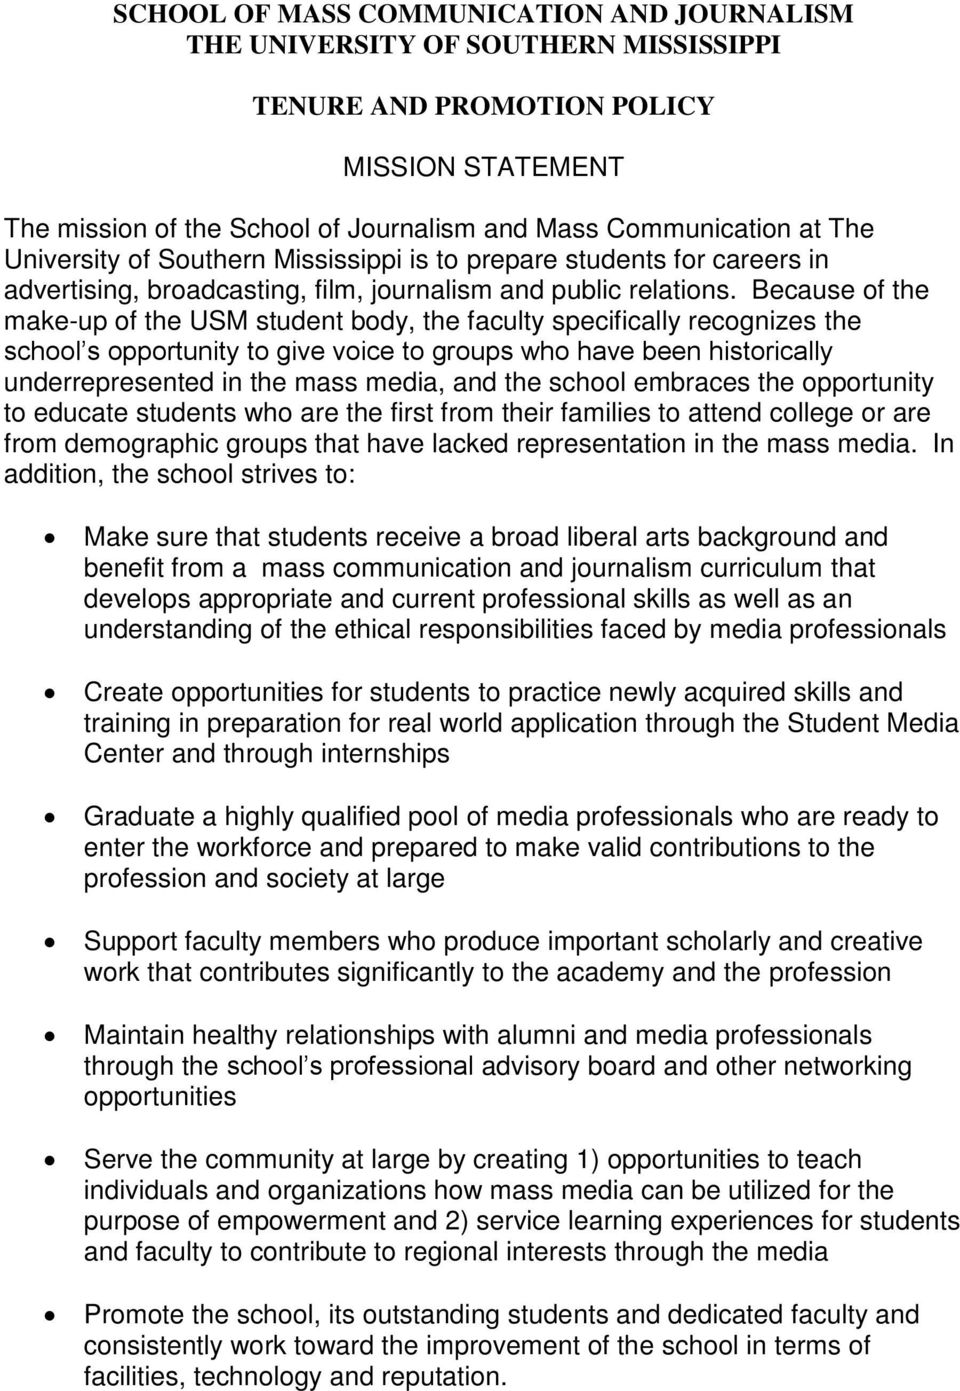 Because of the make-up of the USM student body, the faculty specifically recognizes the school s opportunity to give voice to groups who have been historically underrepresented in the mass media, and